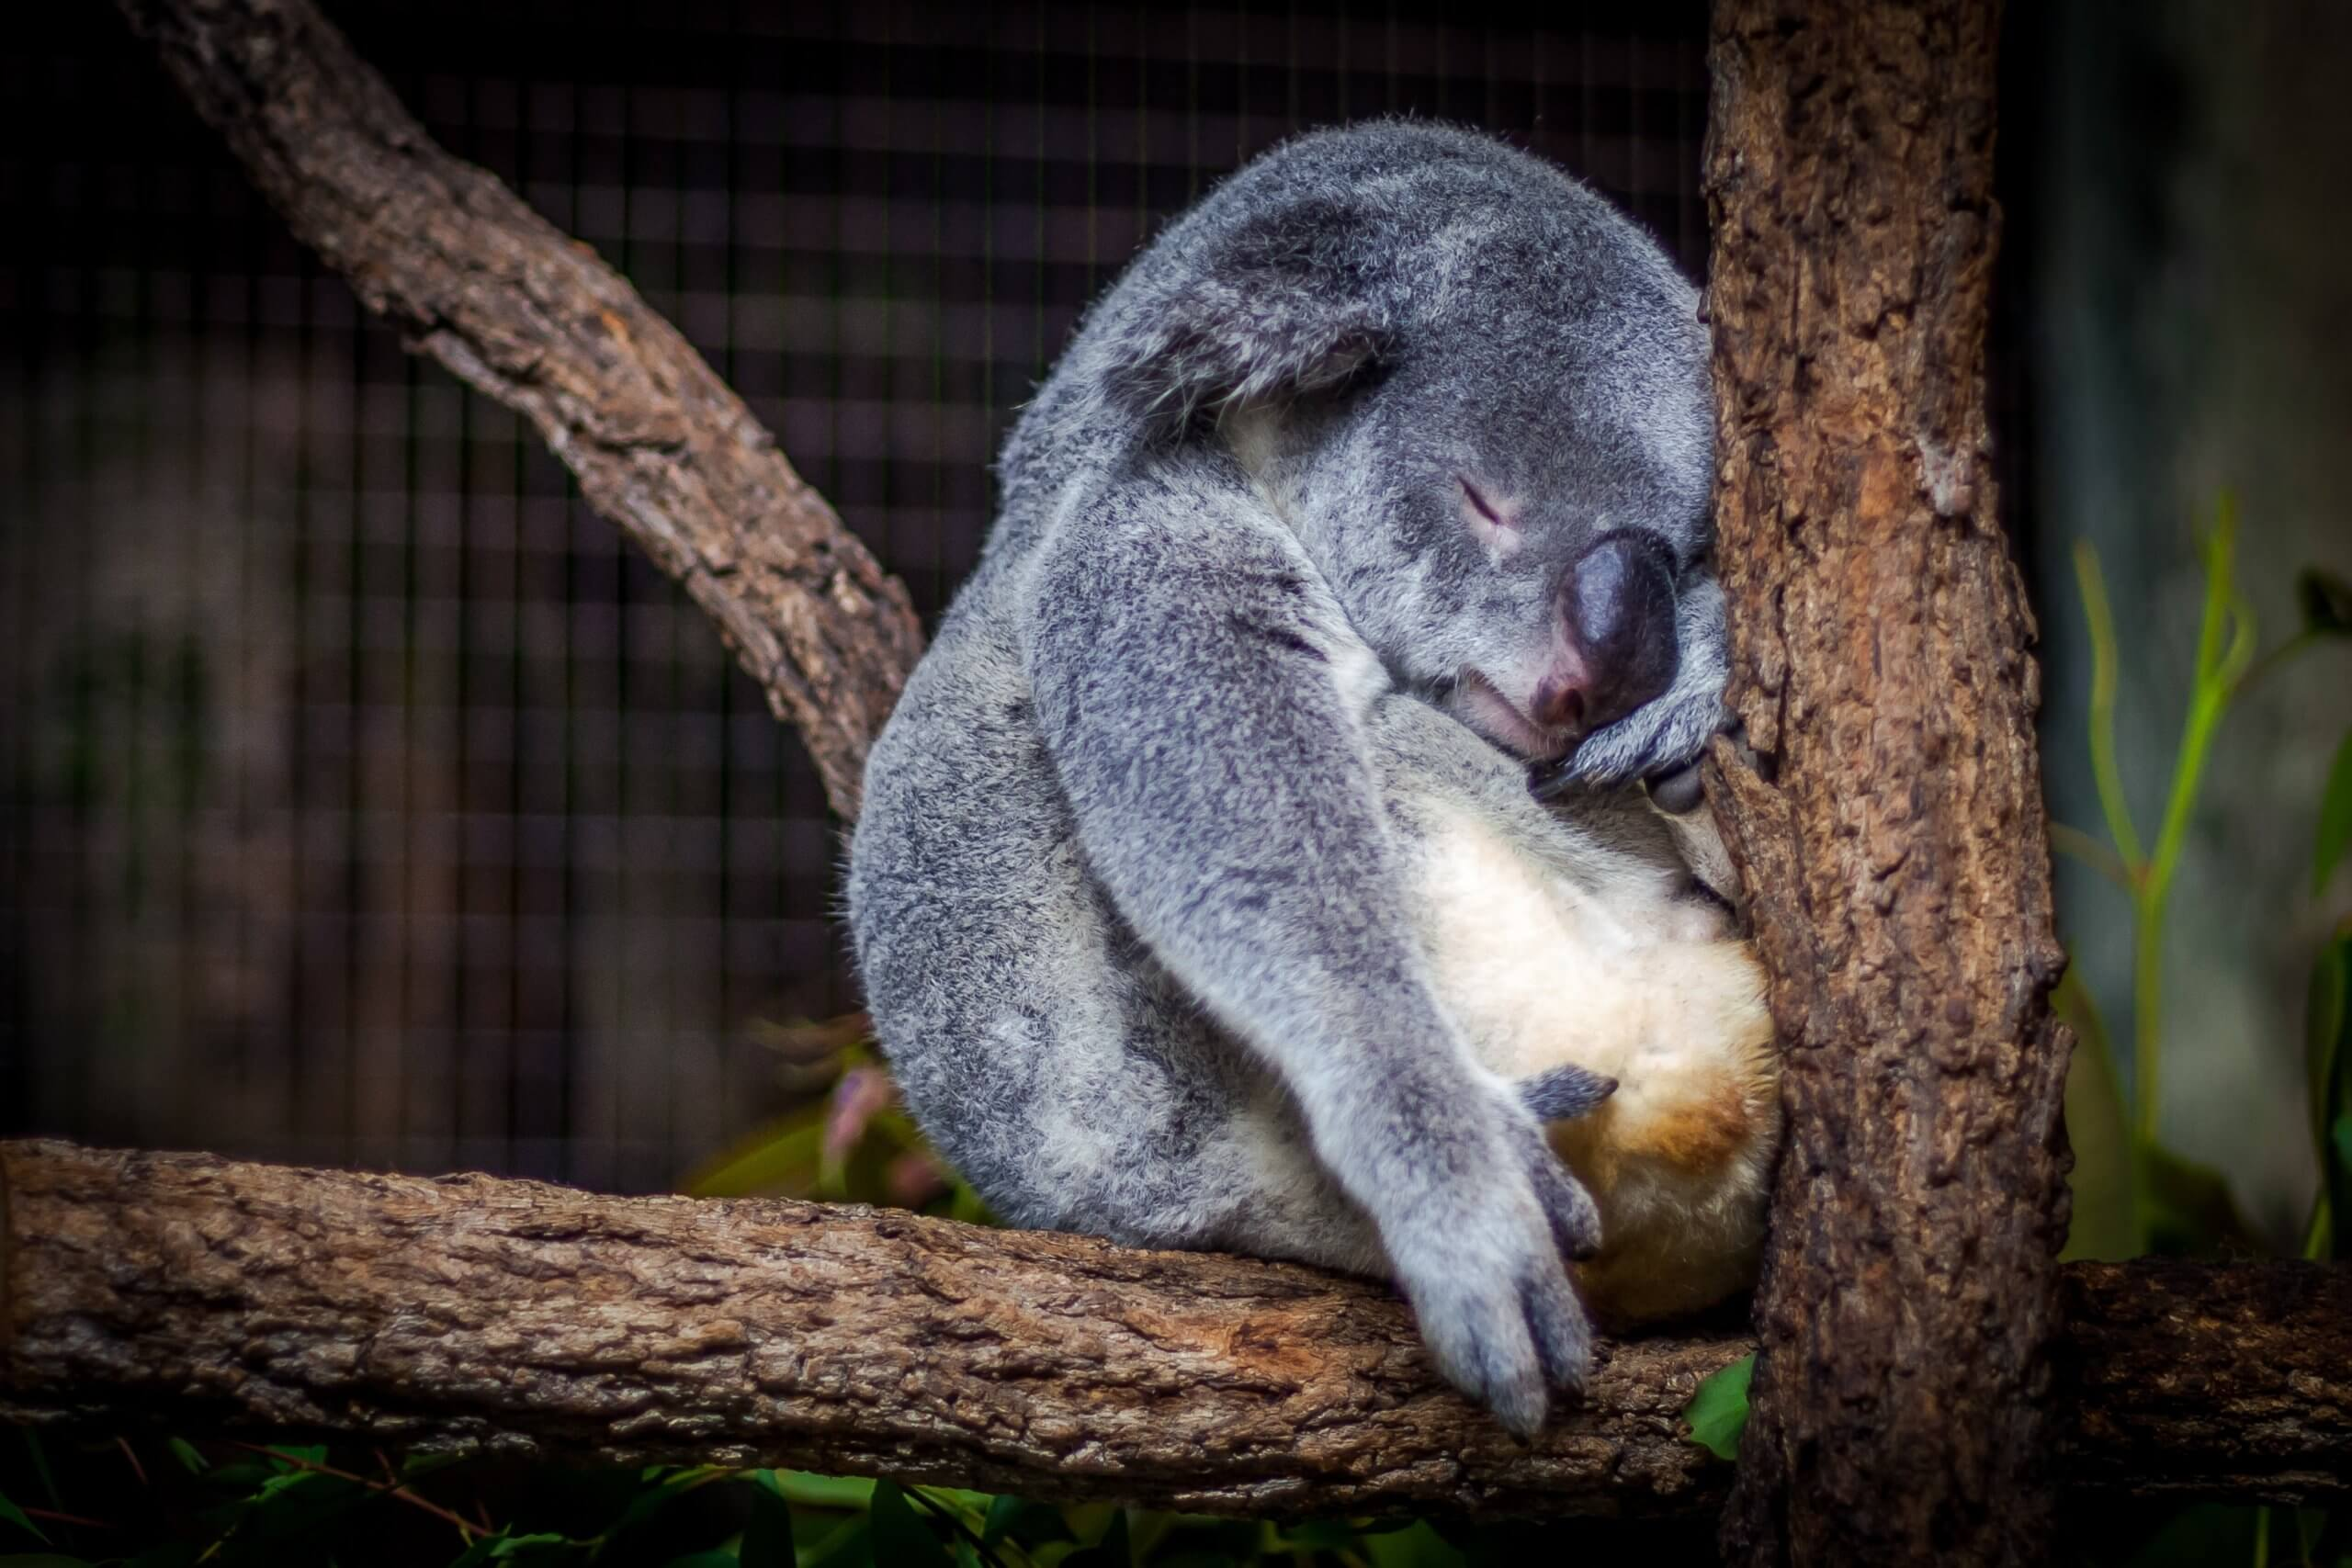 Koala asleep on a branch